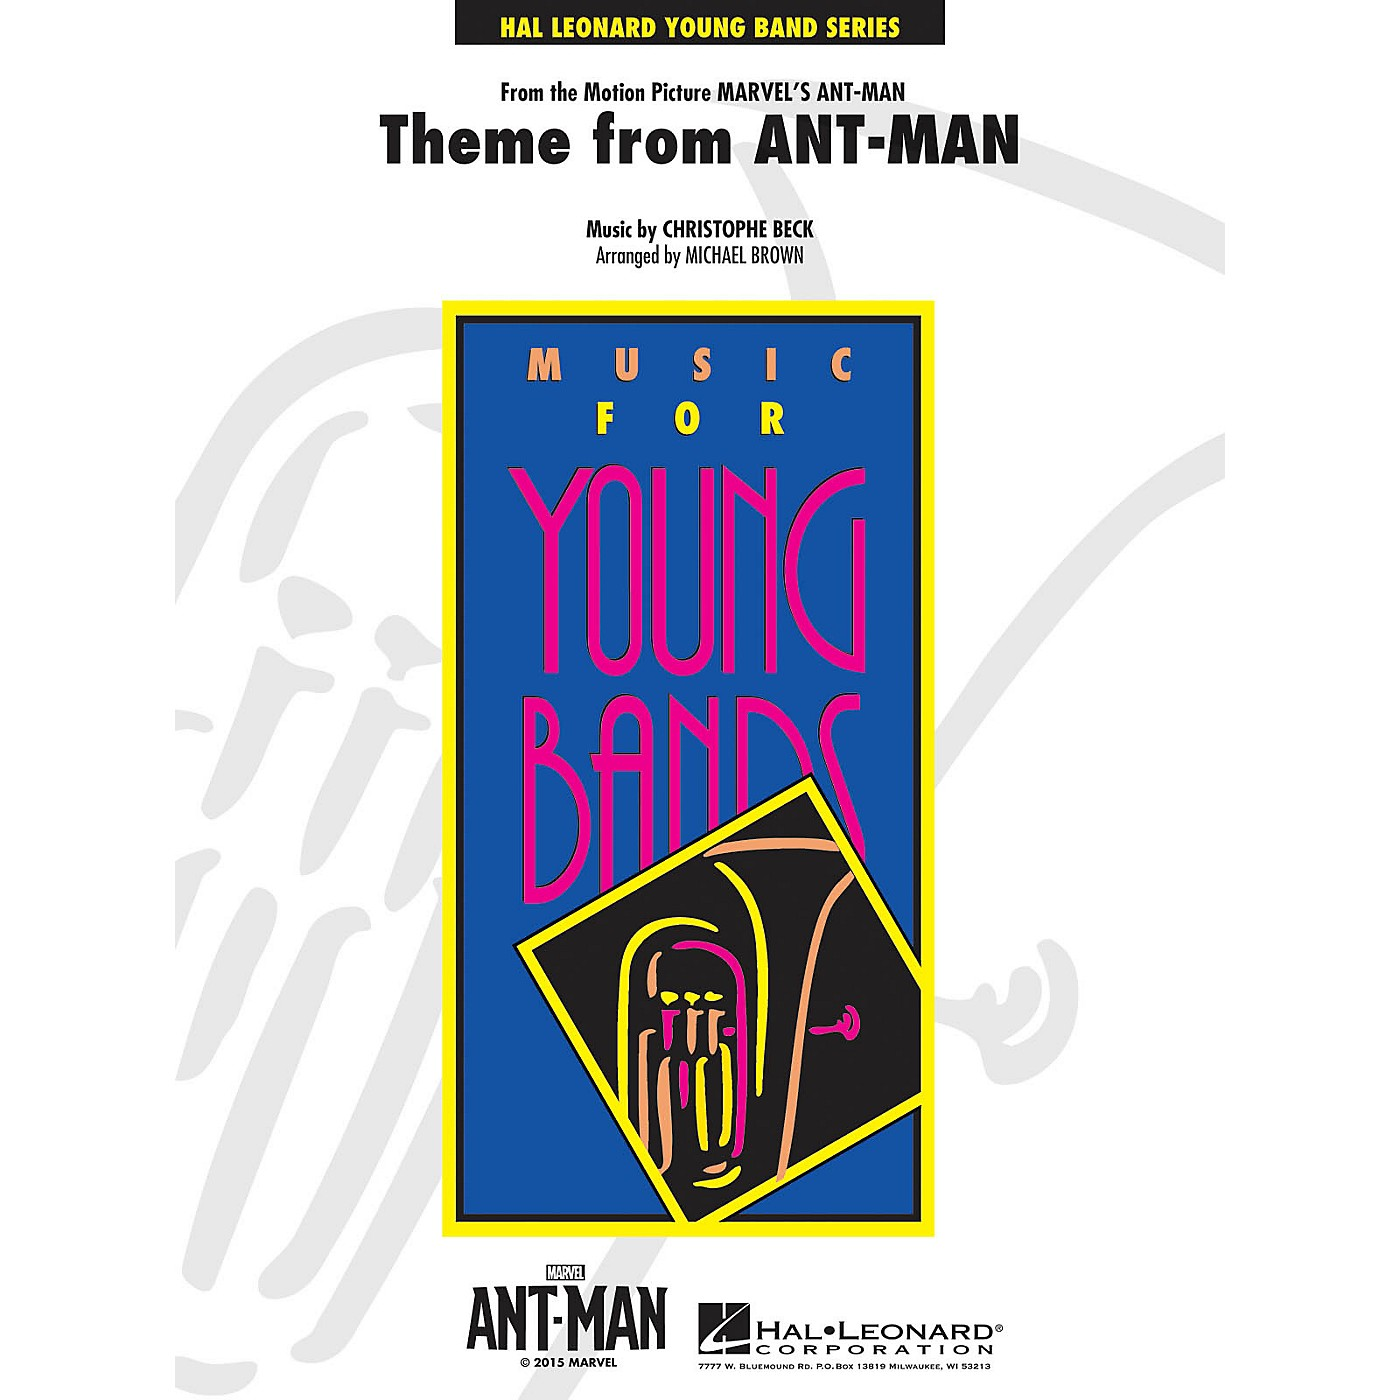 Hal Leonard Theme from Ant-Man - Young Concert Band Series Level 3 arranged by Michael Brown thumbnail